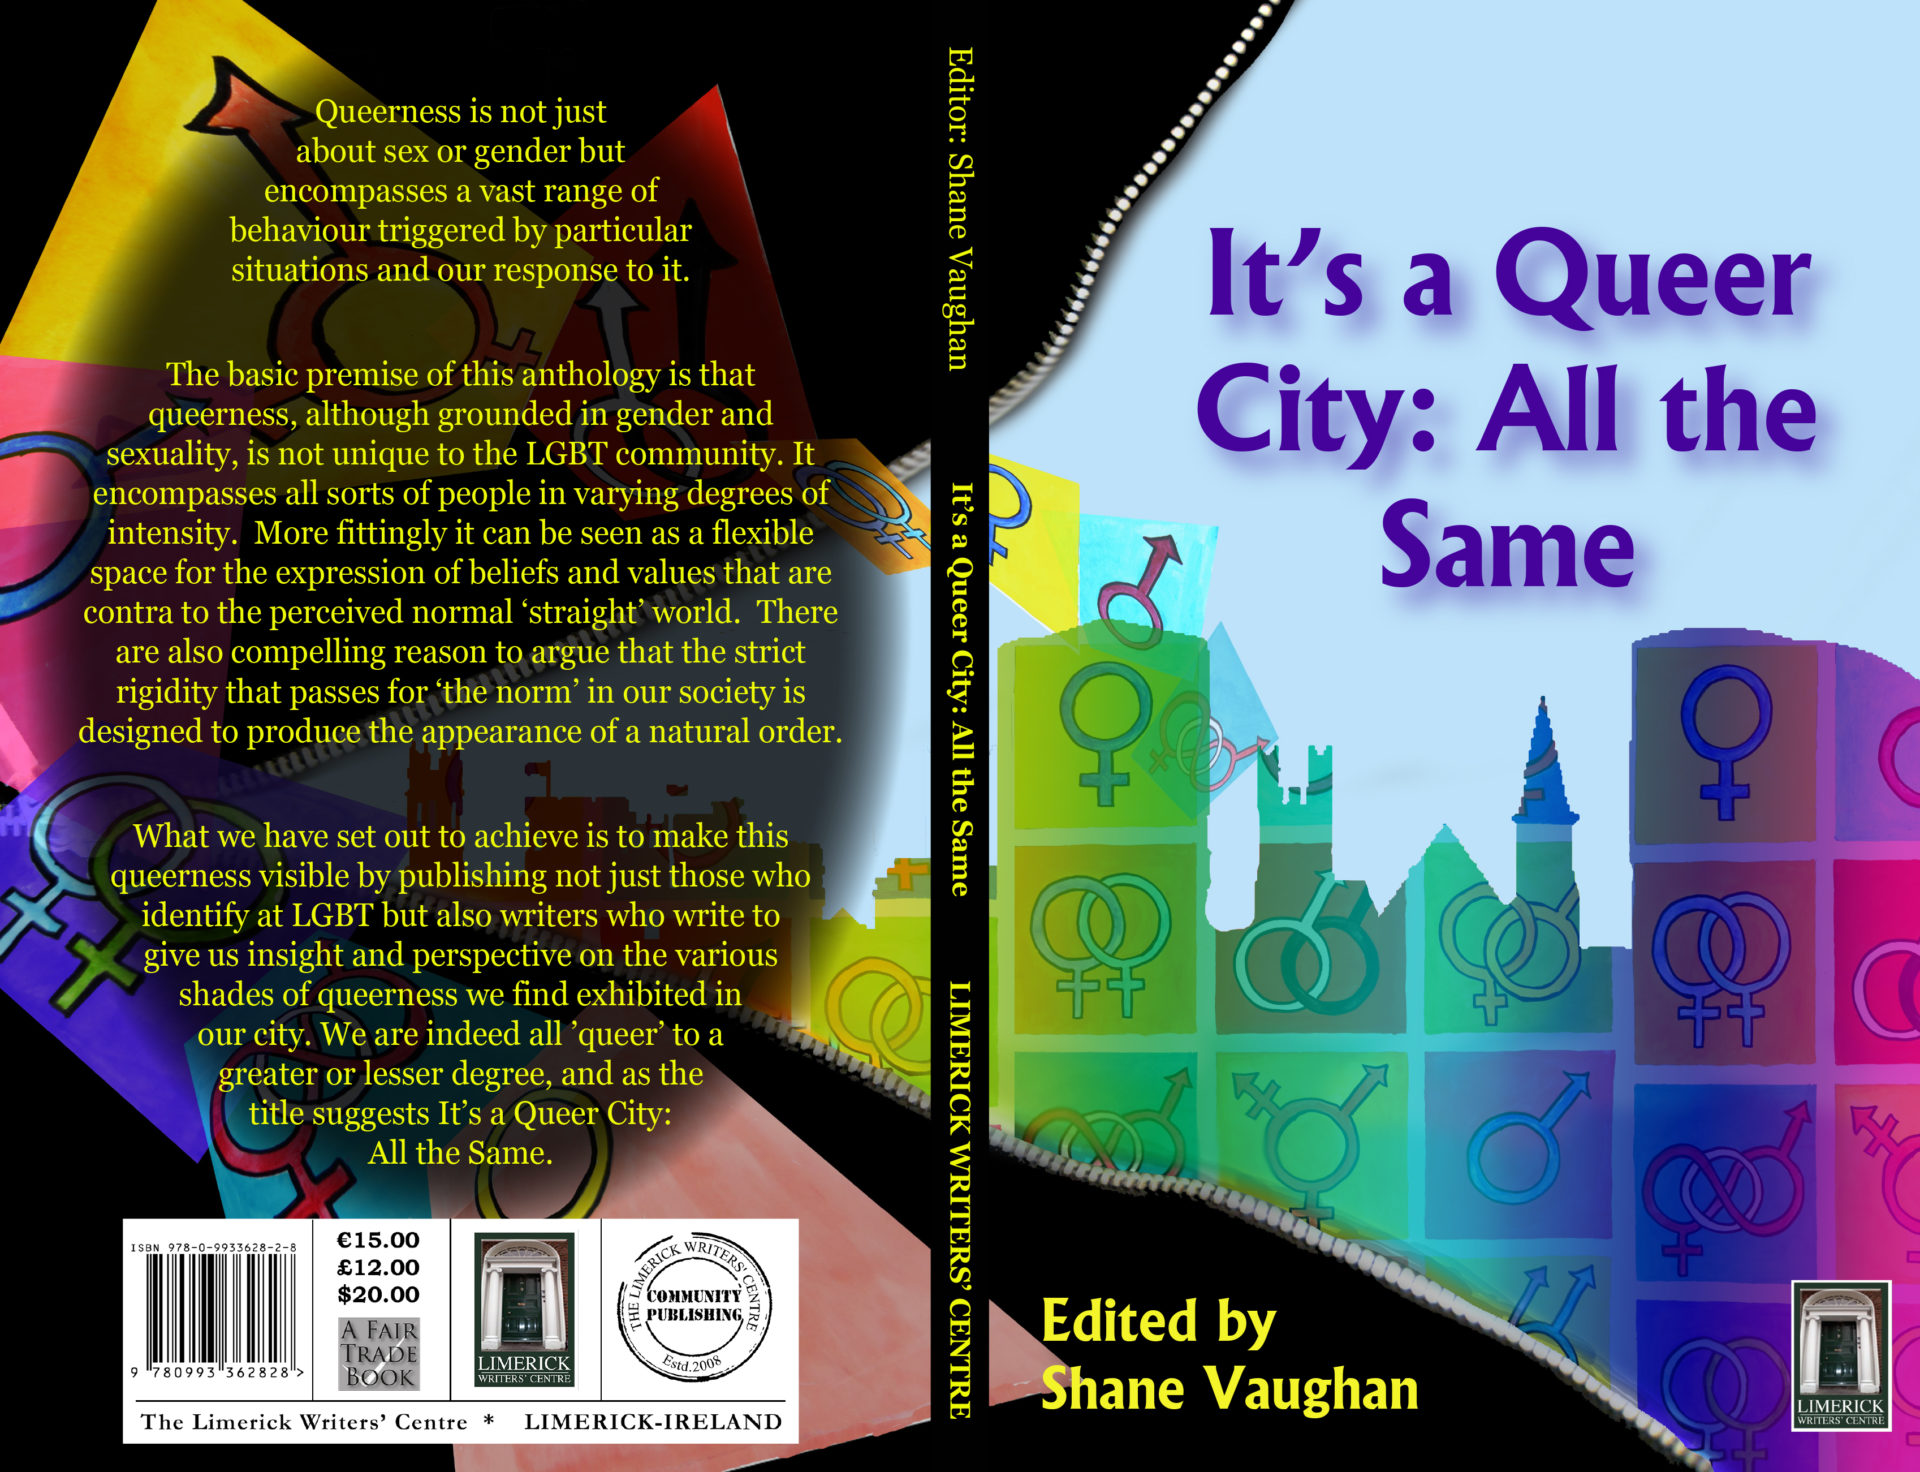 It's a Queer City: All the Same